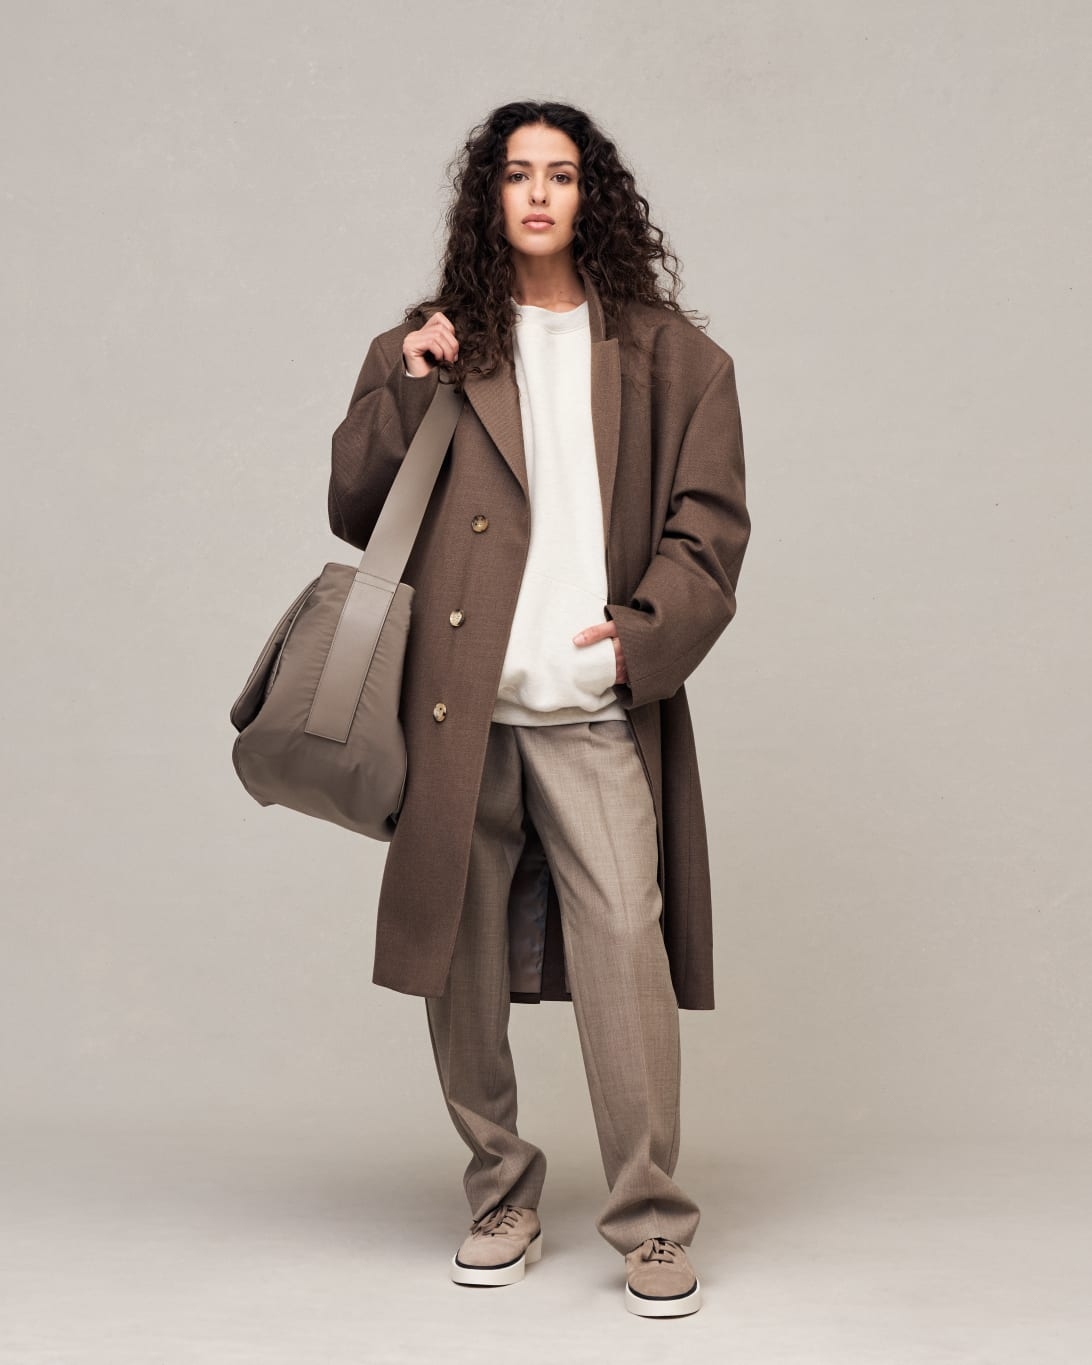 Seventh Collection | Fall/Winter Lookbook Look 14